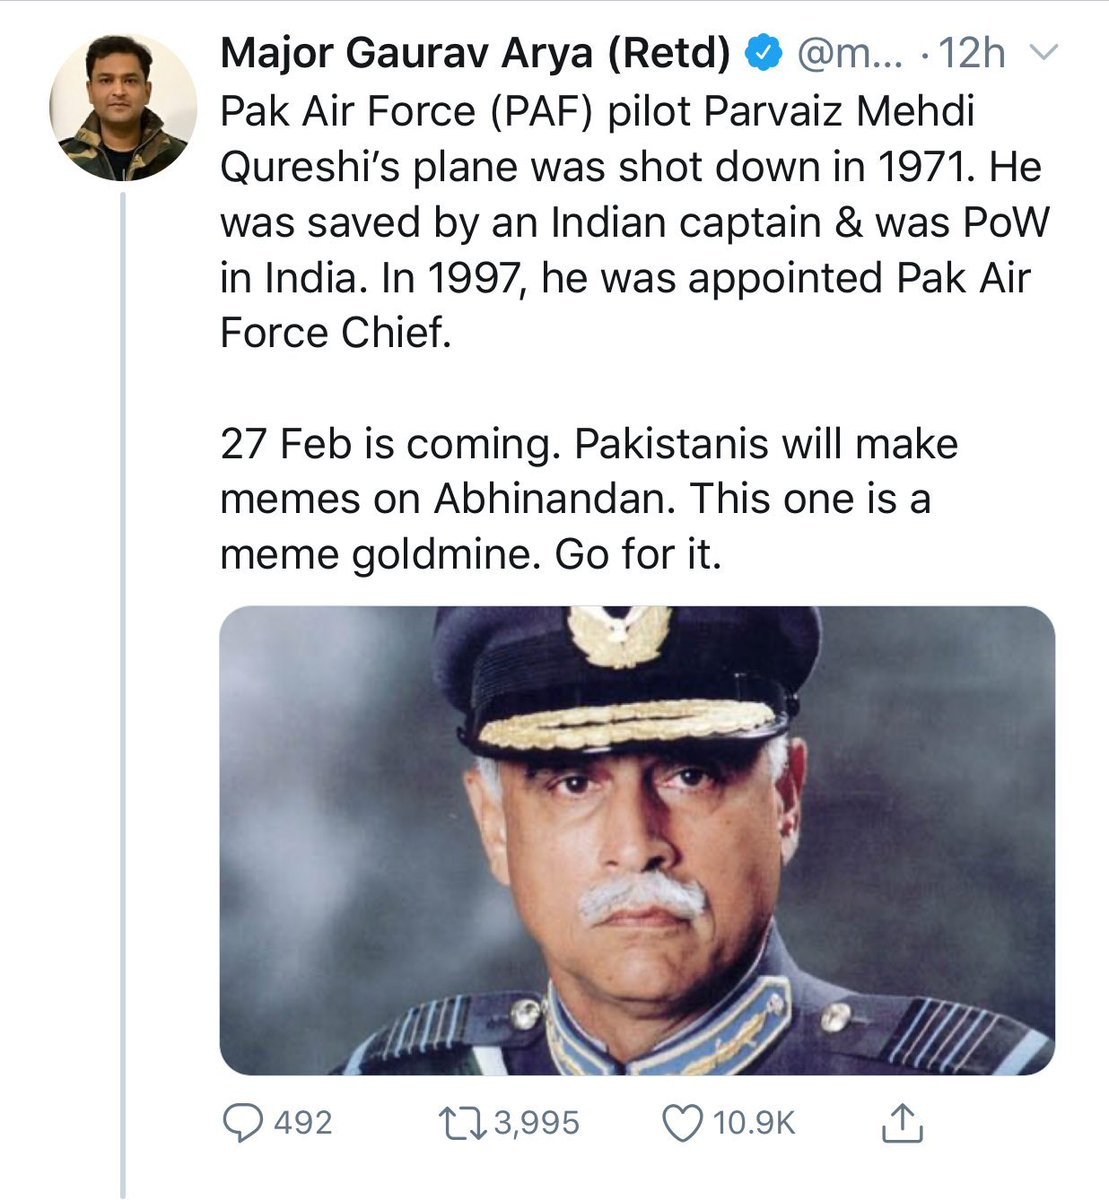 Joy On Twitter The Difference Between Major Embarassment Gaurav Arya Retd And Lt General Hs Panag Retd